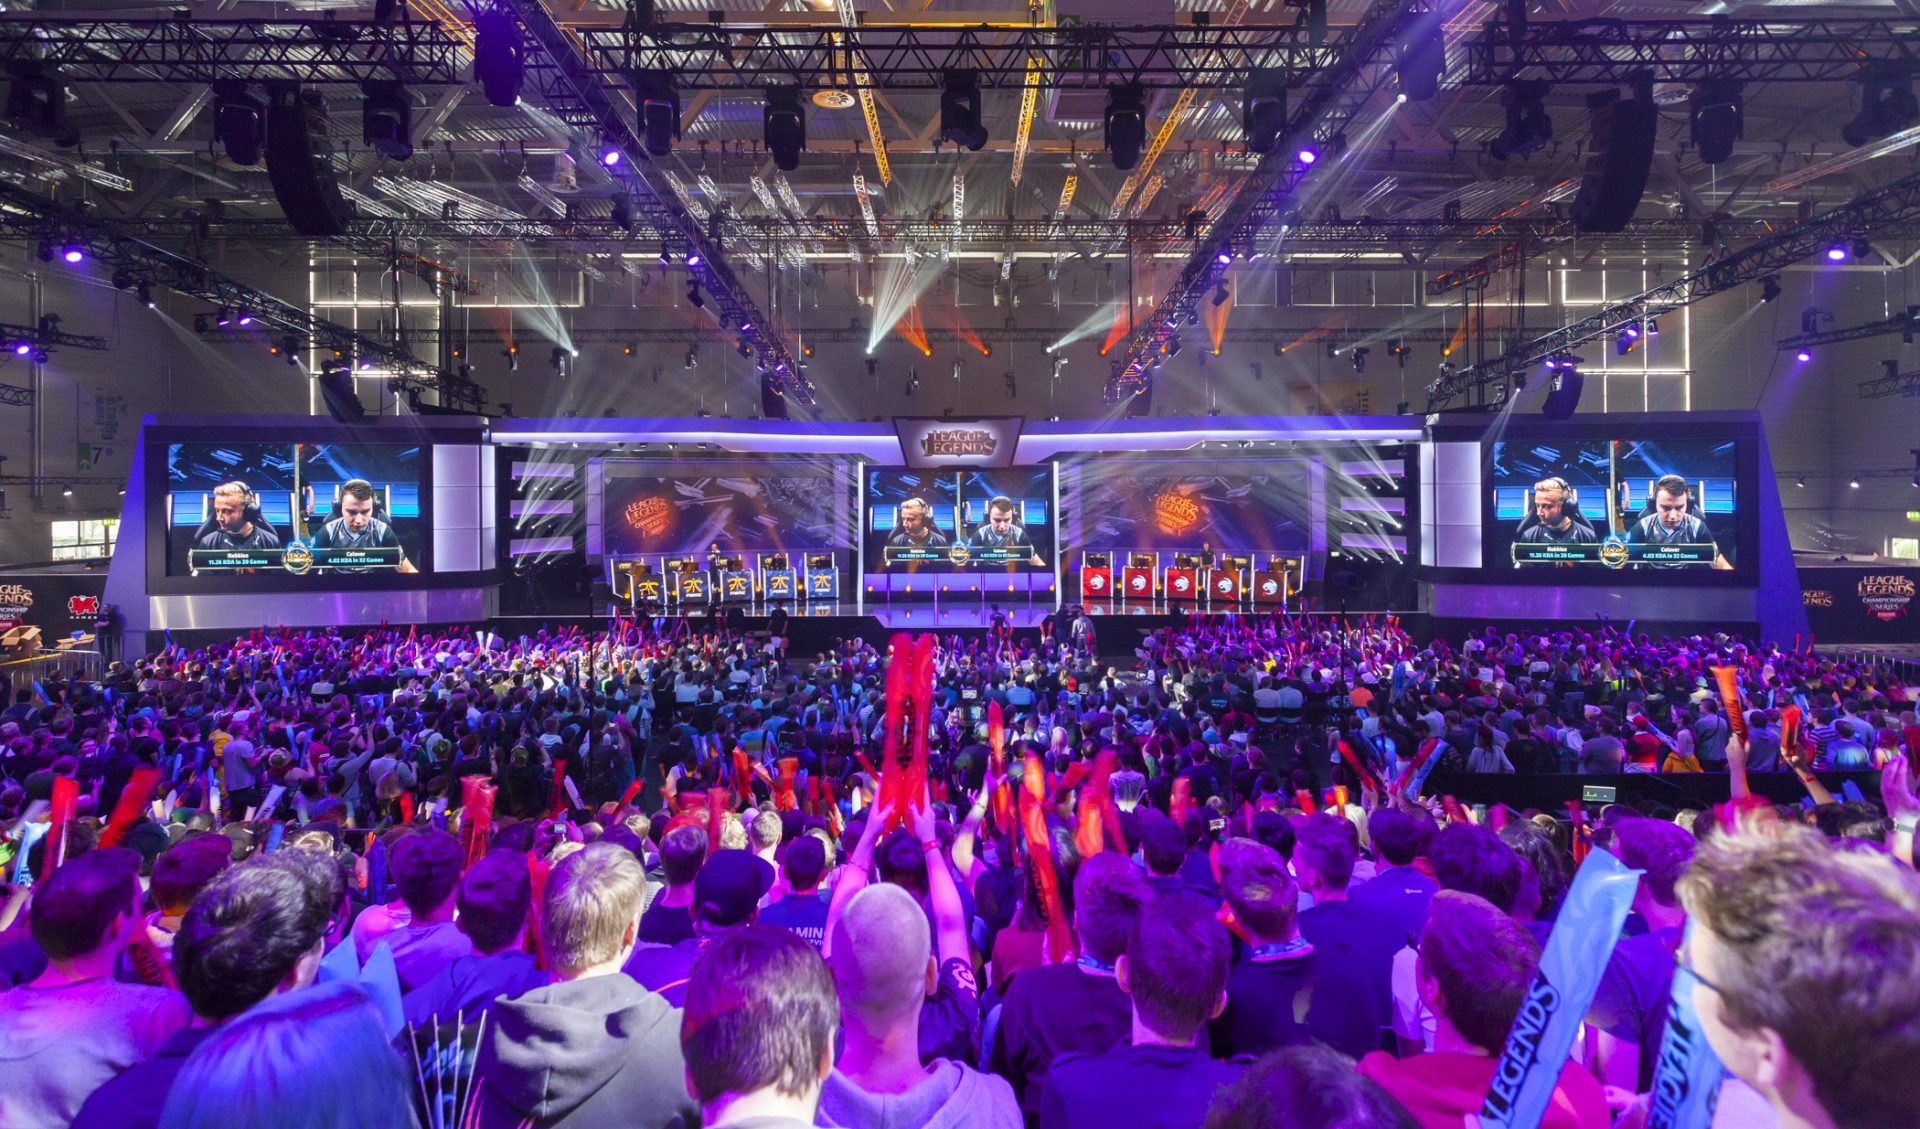 gamescom_08_2014_MG_3875